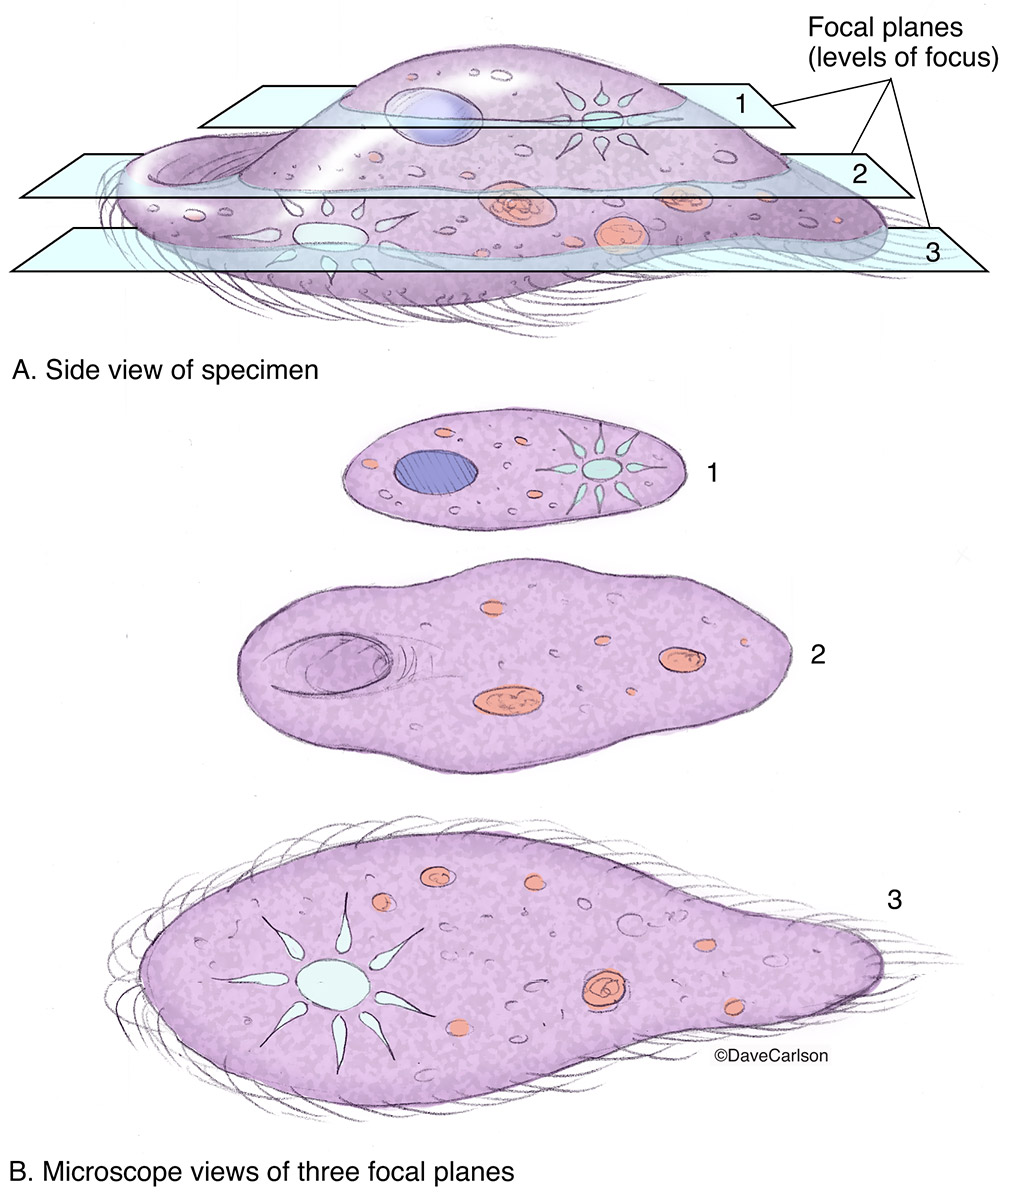 illustration, microscope focal planes, different levels of focus, different parts of a specimen, photo